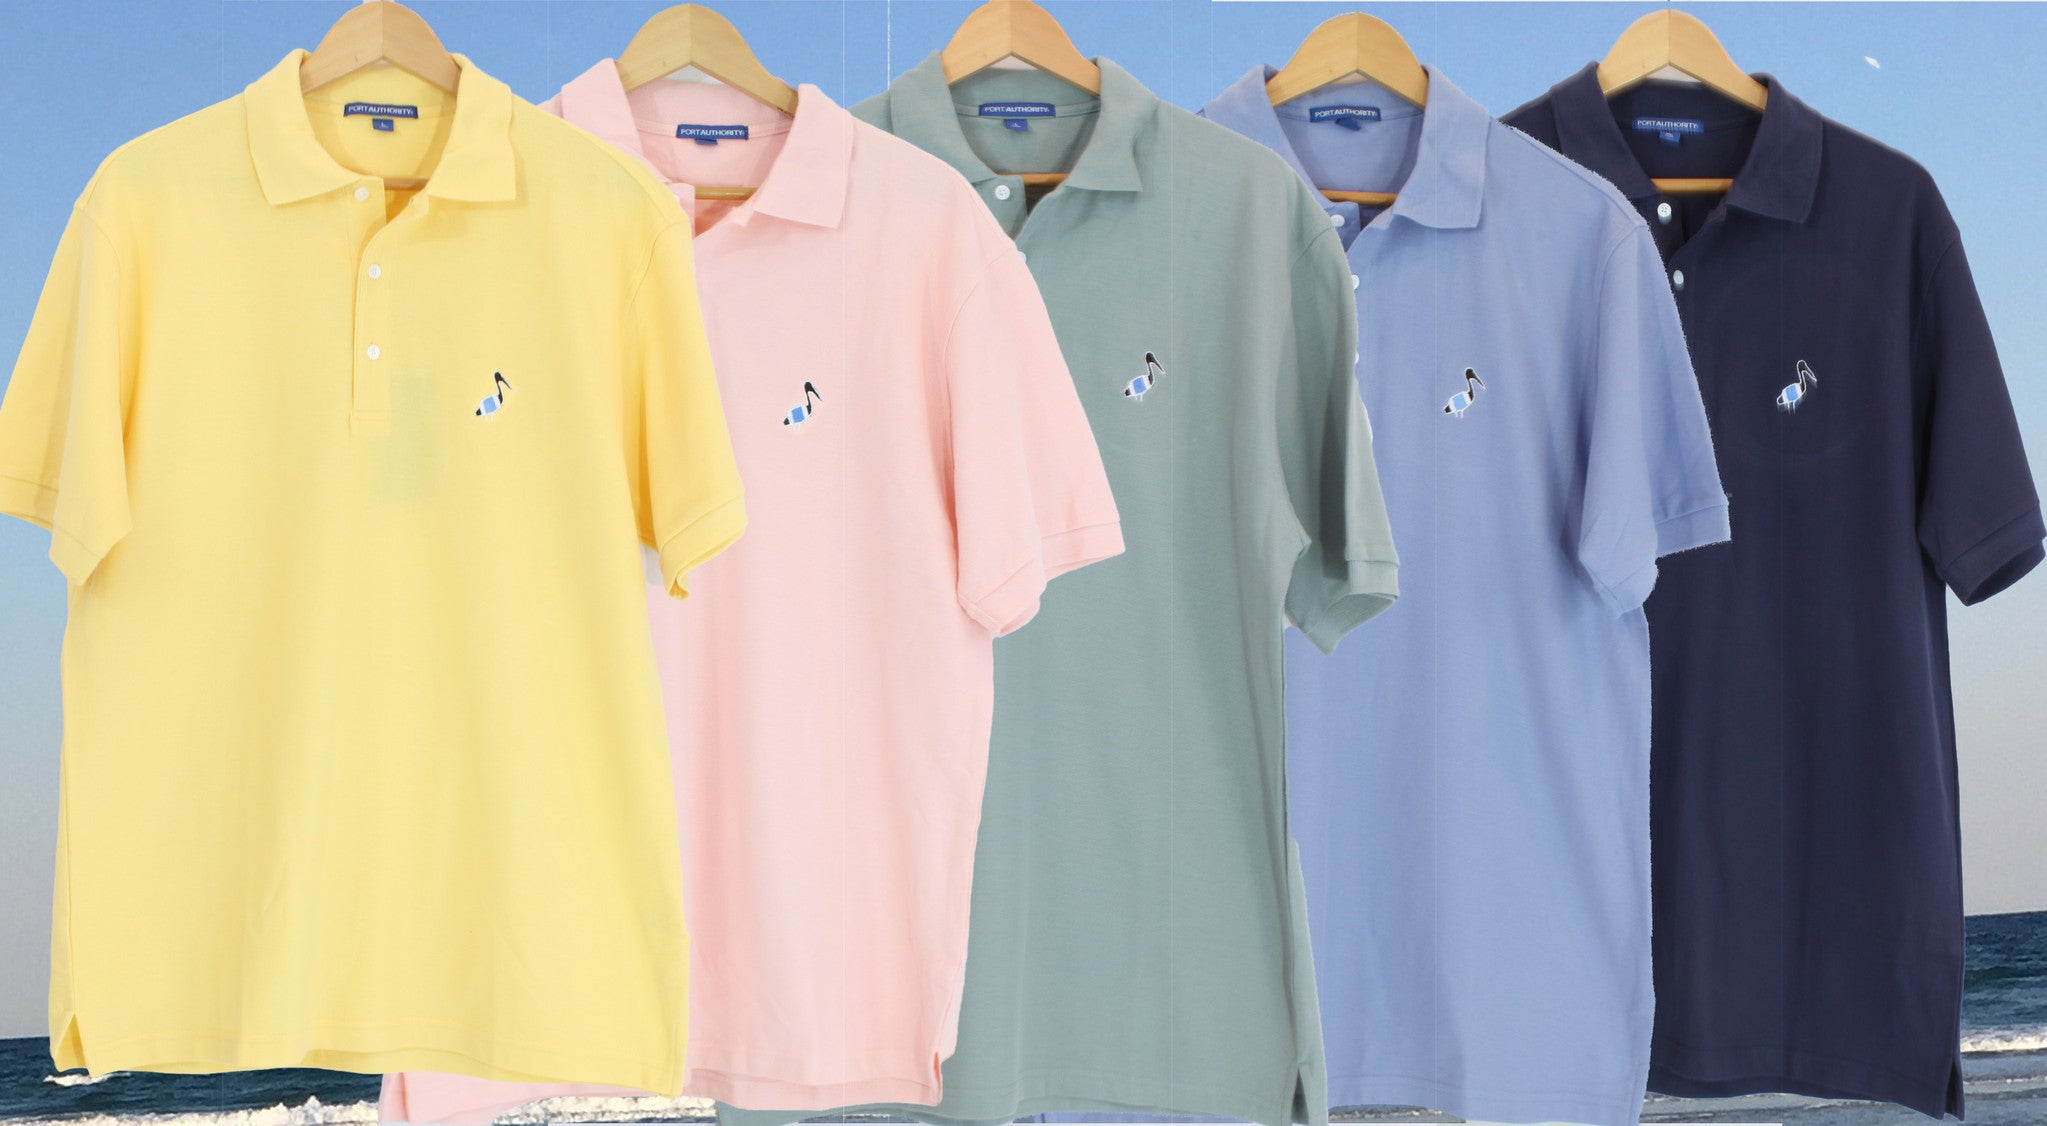 Pelics's Perch Polo Shirts Now Available!